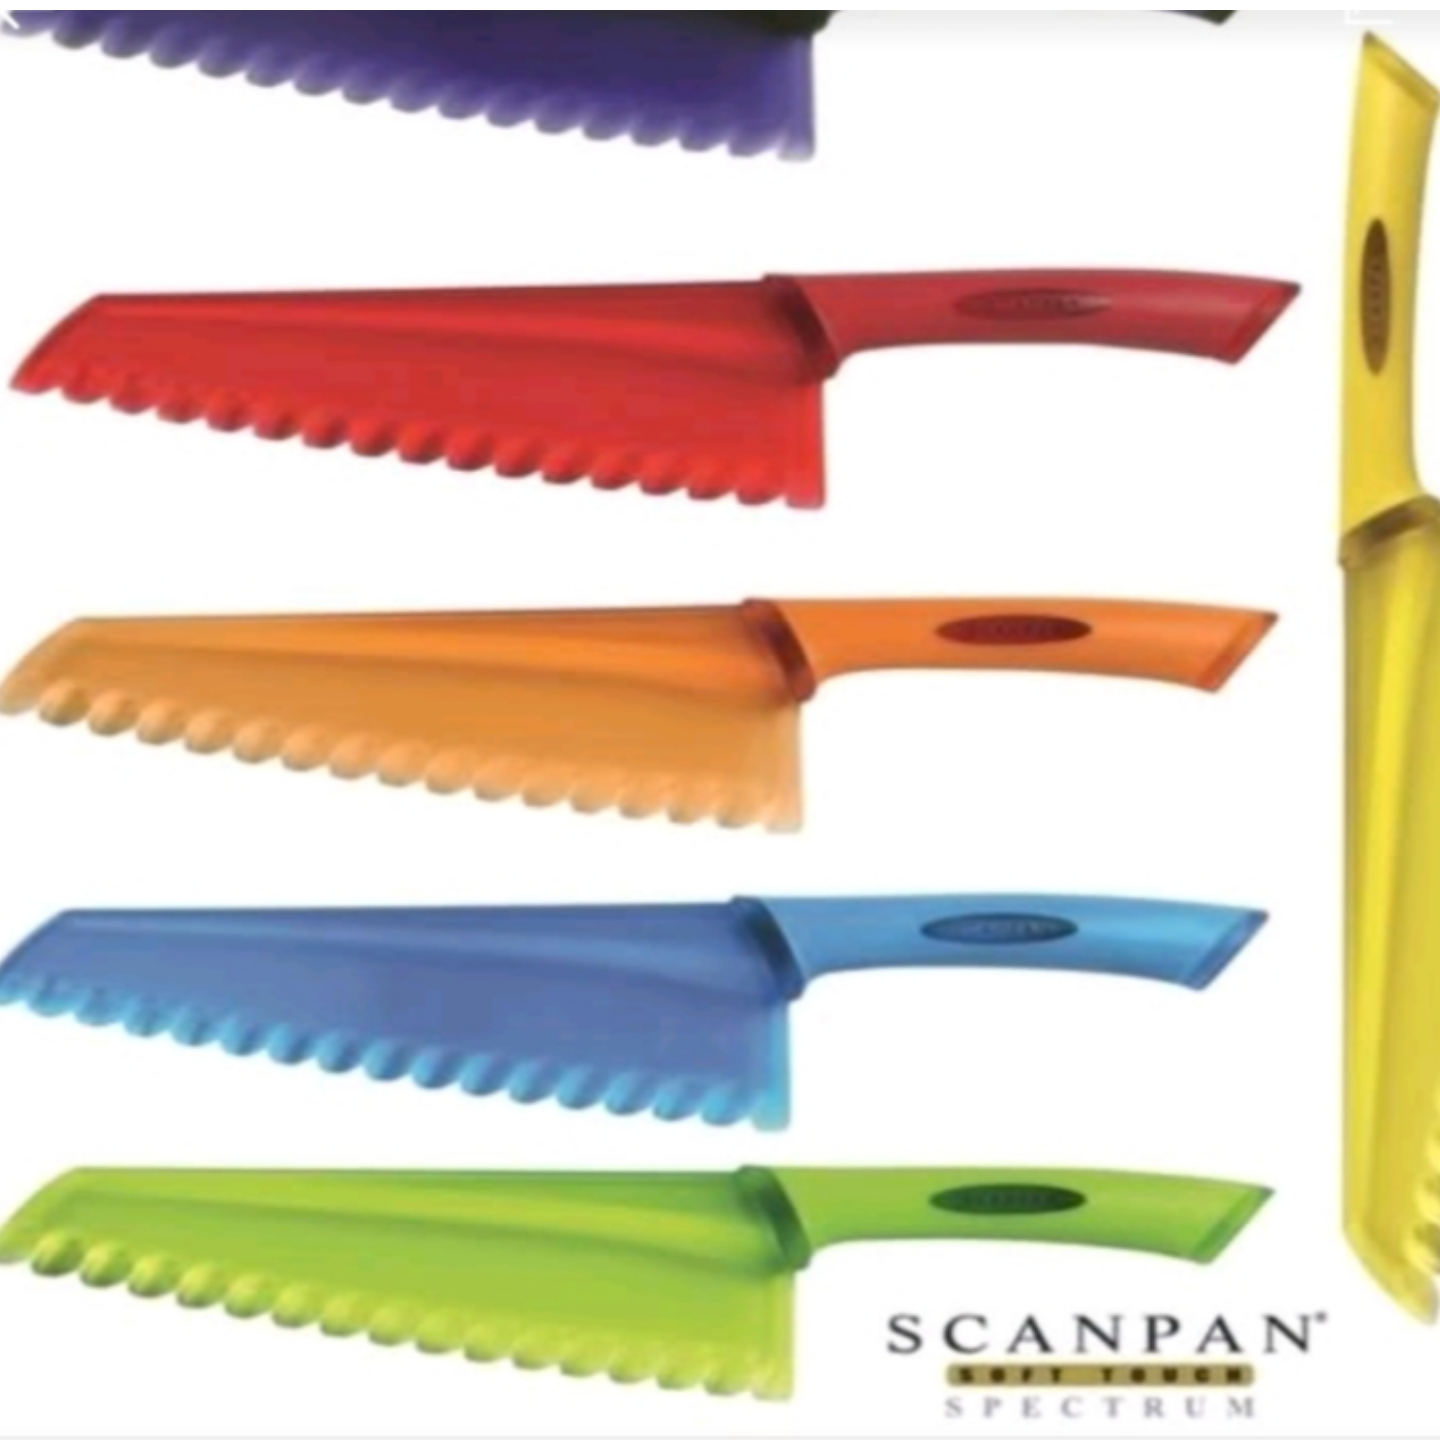 Scanpan salad and vegetables knife